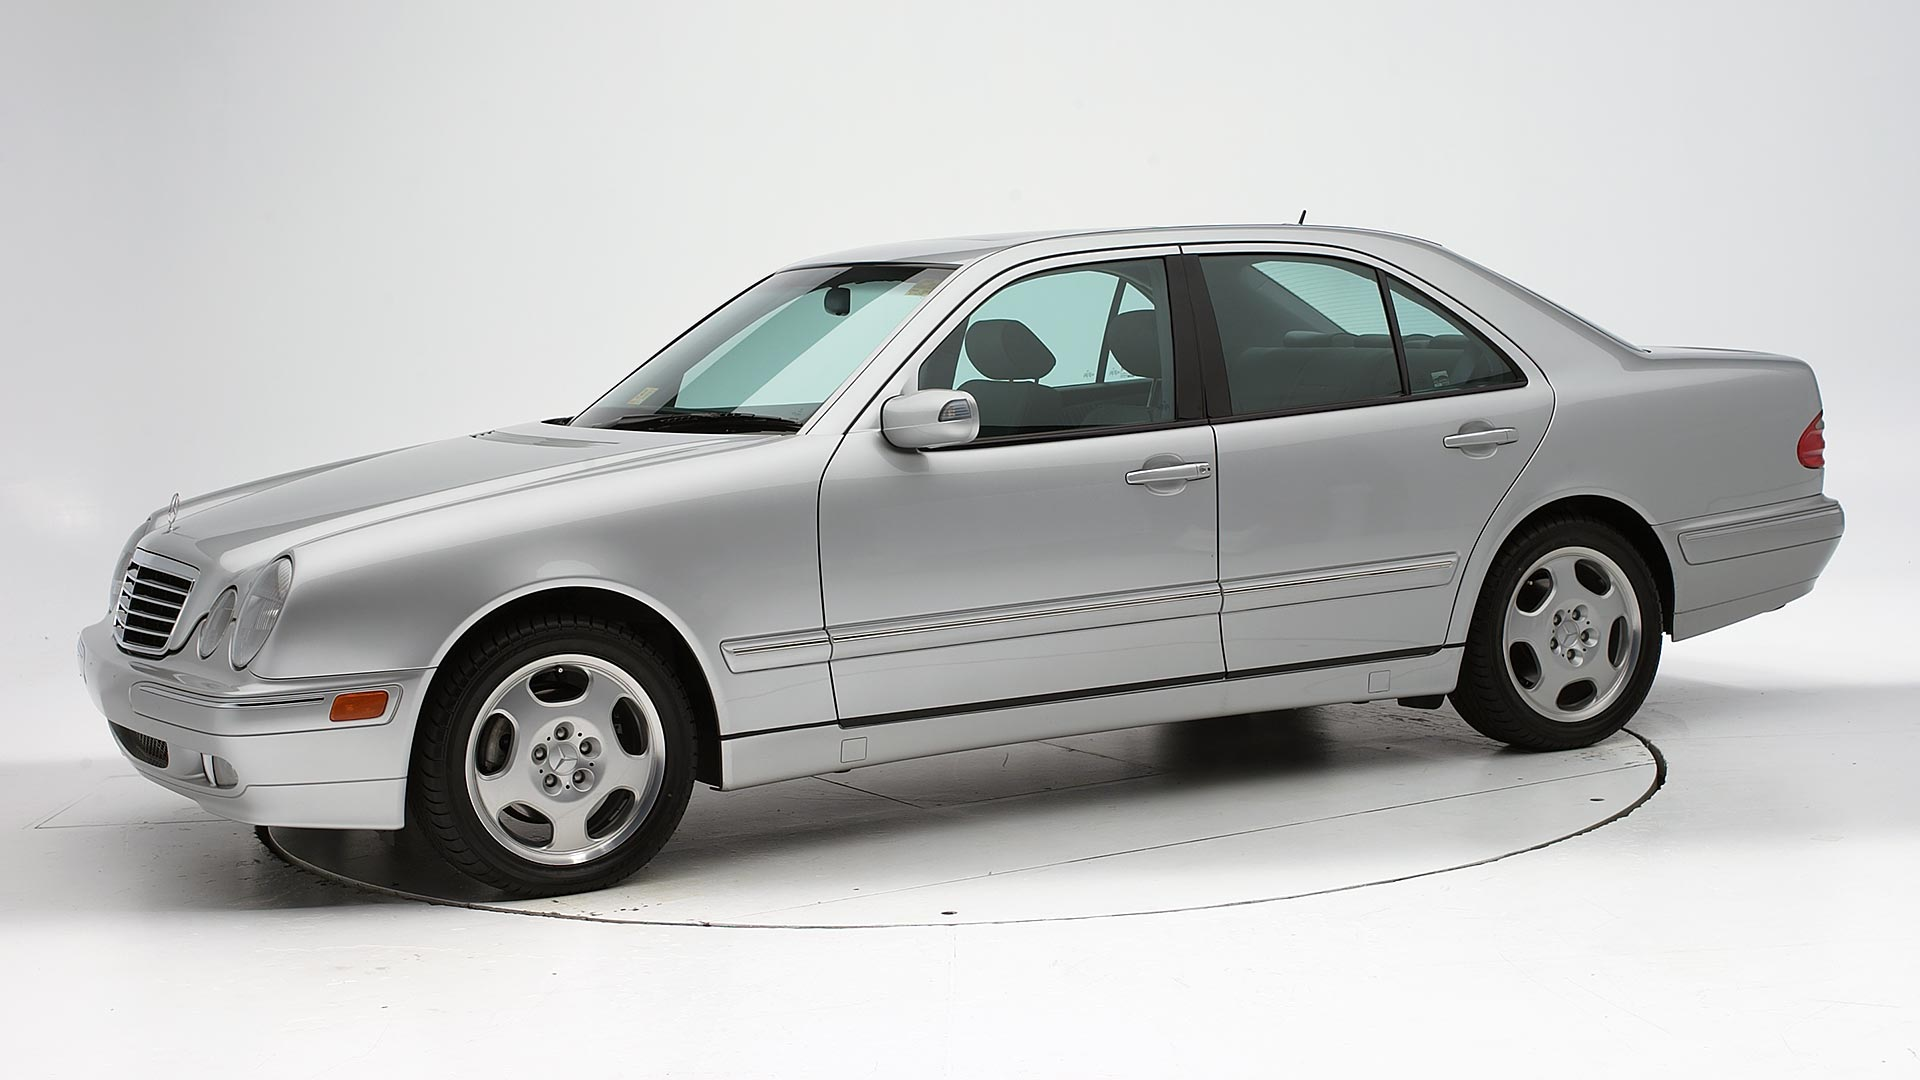 2002 Mercedes-Benz E-Class 4-door sedan